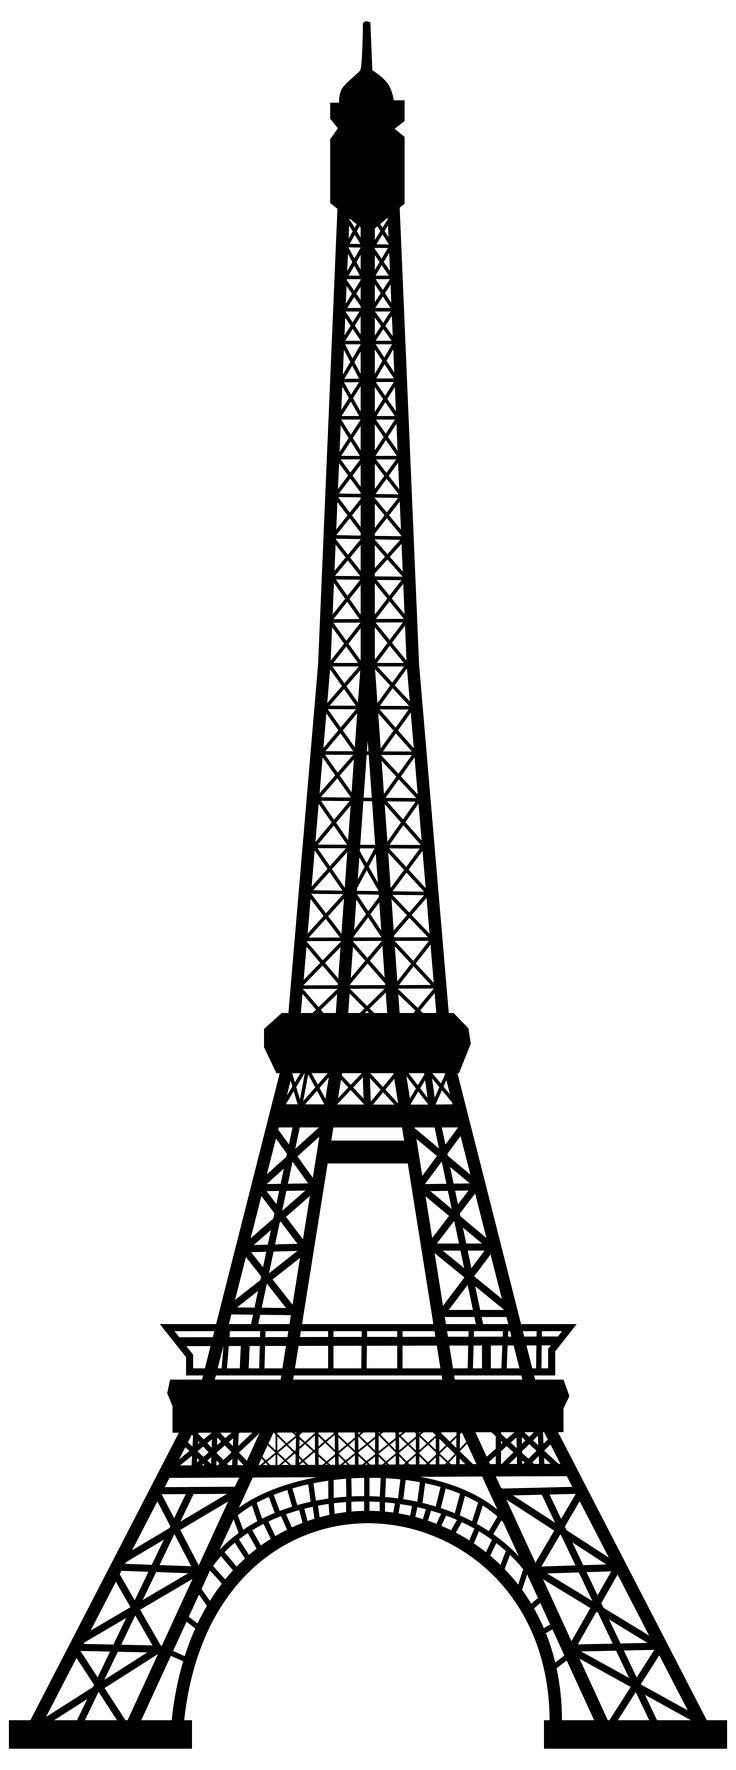 Best 25+ Eiffel Tower Art Ideas On Pinterest | Eiffel Tower Regarding Eiffel Tower Metal Wall Art (View 4 of 20)